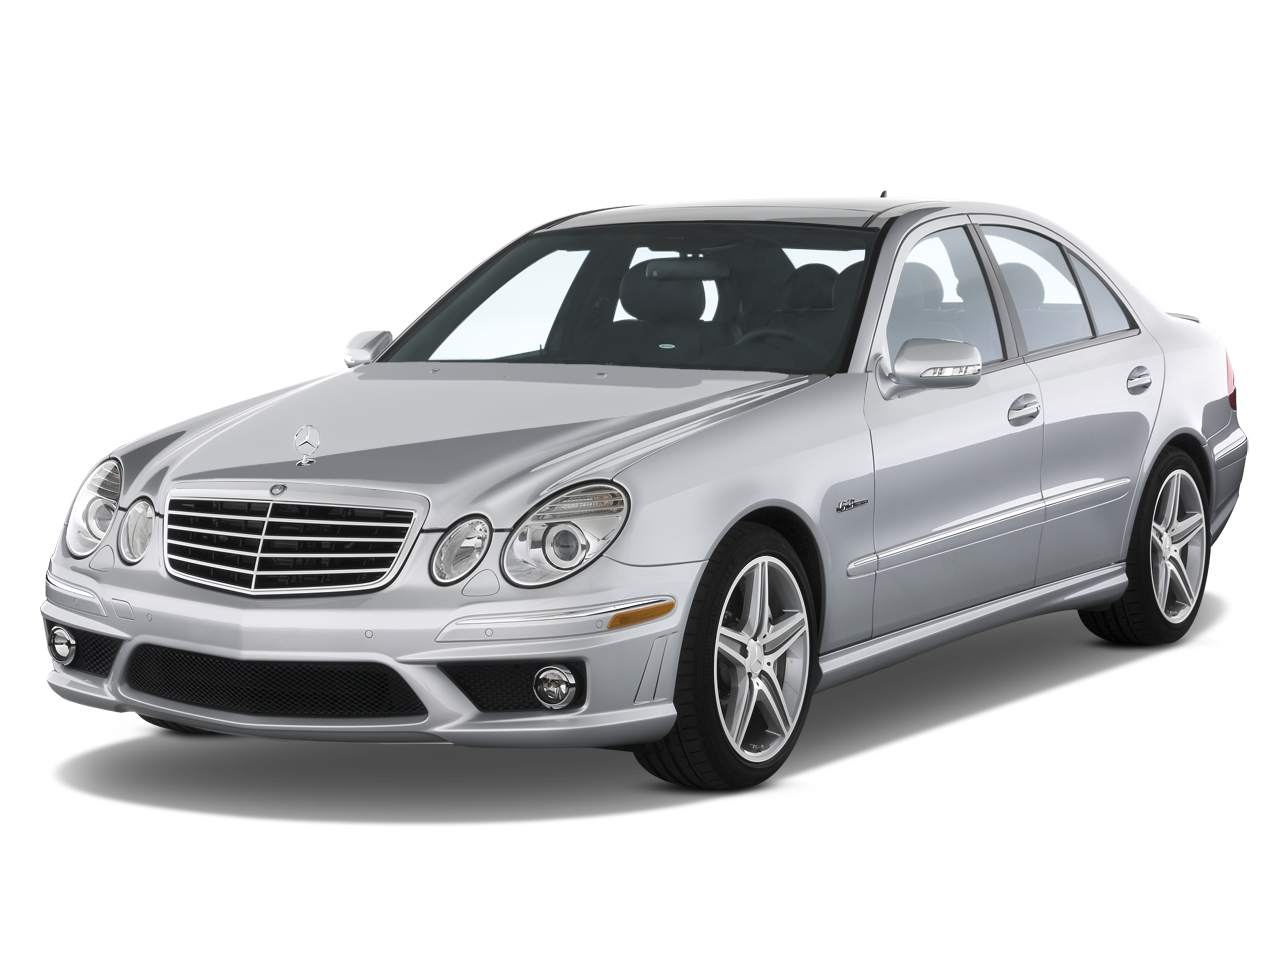 2009 mercedes benz e320 bluetec fuel efficient cars. Black Bedroom Furniture Sets. Home Design Ideas